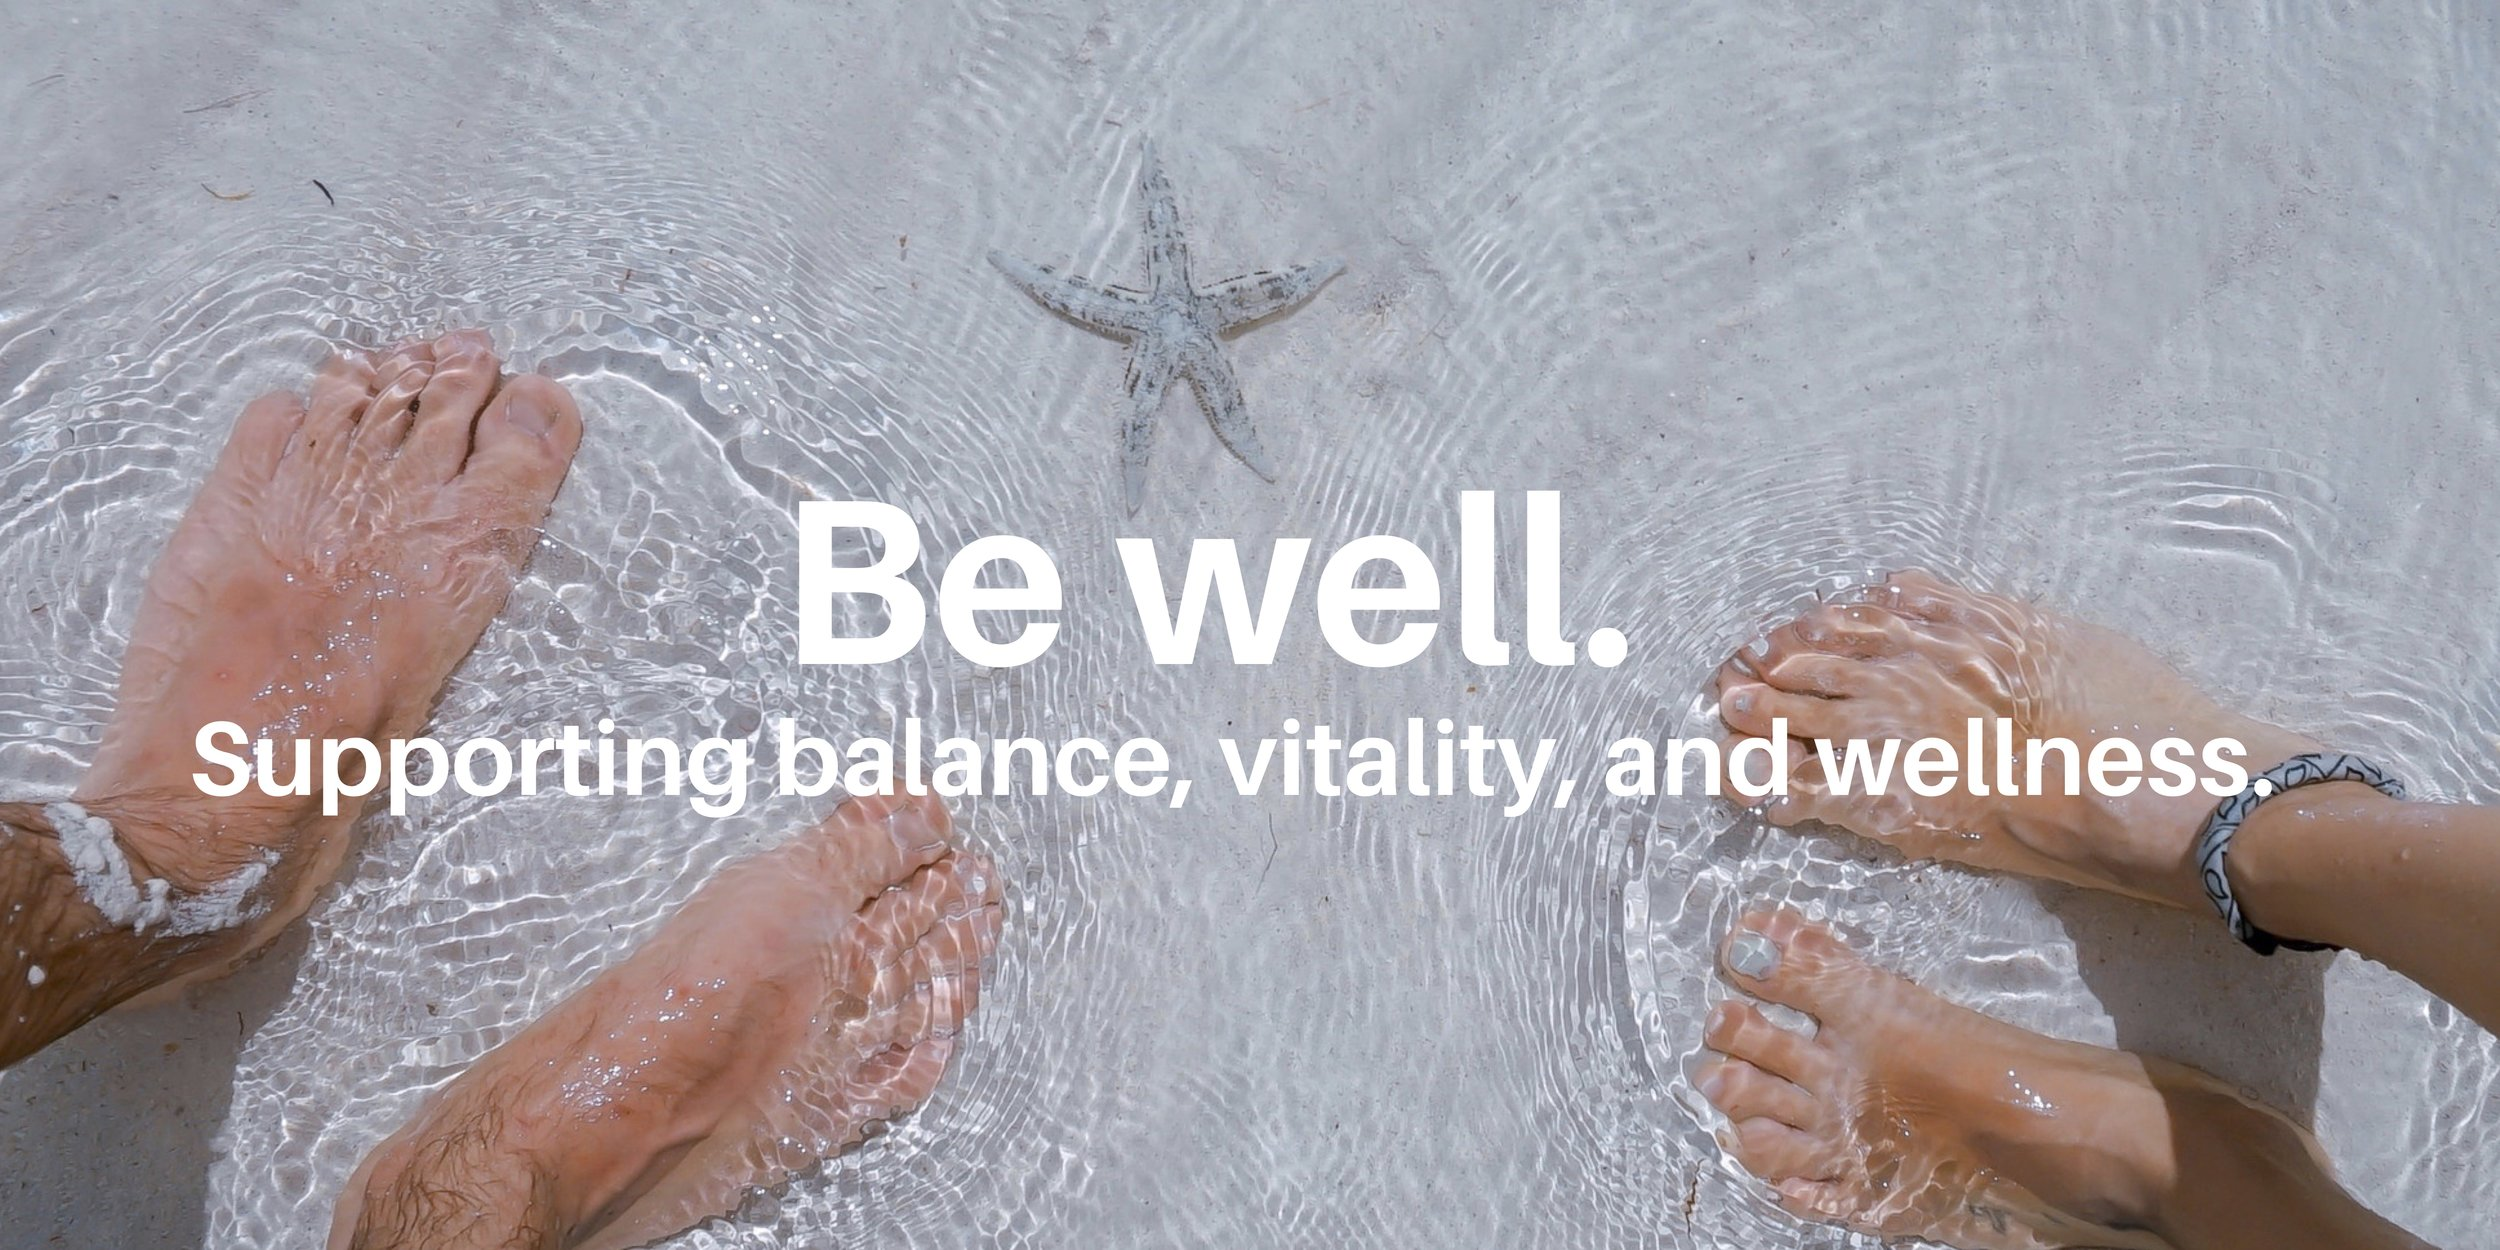 Be Well Blog by Wellness Pharmacy Cary